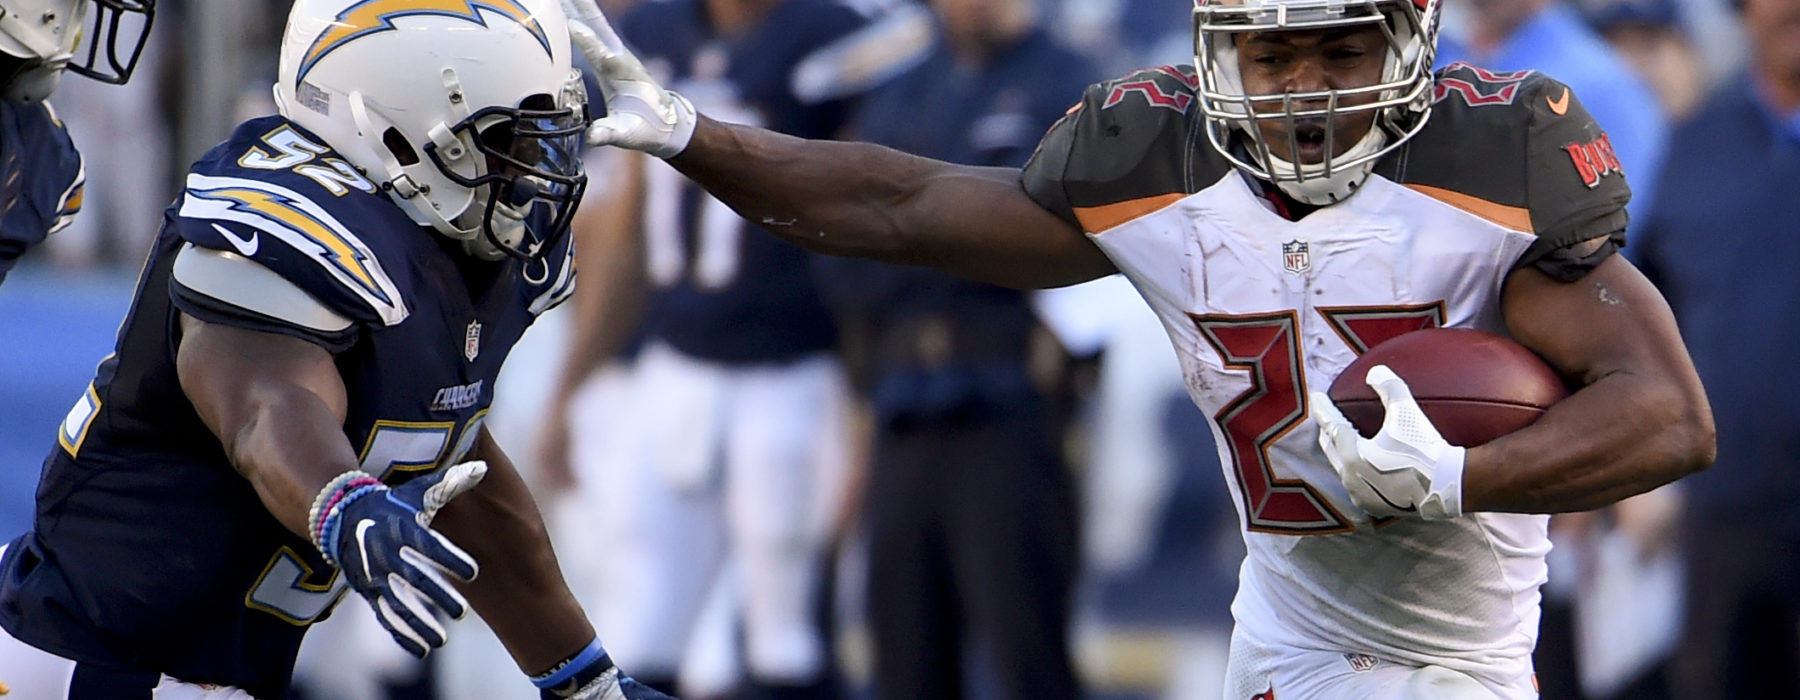 Tampa Bay Buccaneers running back Doug Martin, right, pushes off San Diego Chargers inside linebacker Denzel Perryman during the second half of an NFL football game Sunday, Dec. 4, 2016, in San Diego. (AP Photo/Denis Poroy)